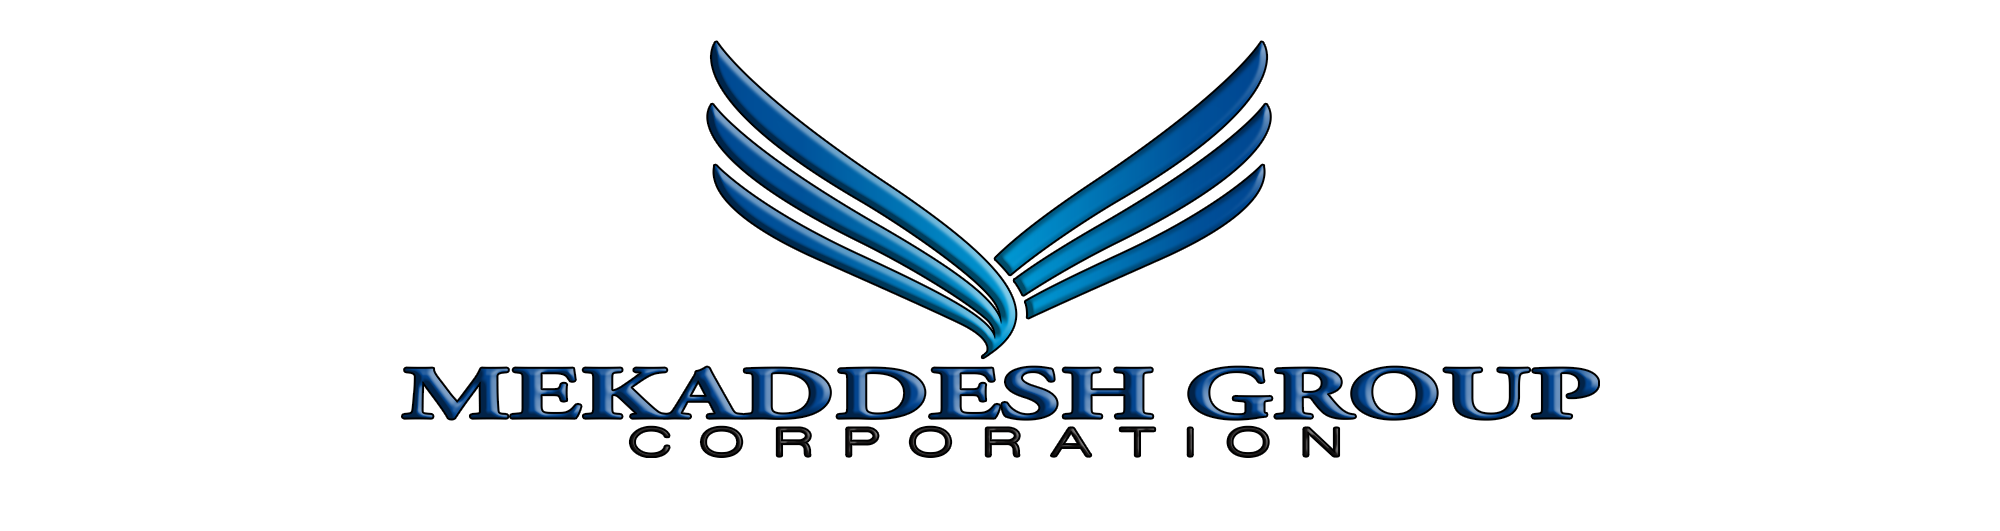 Mekaddesh group